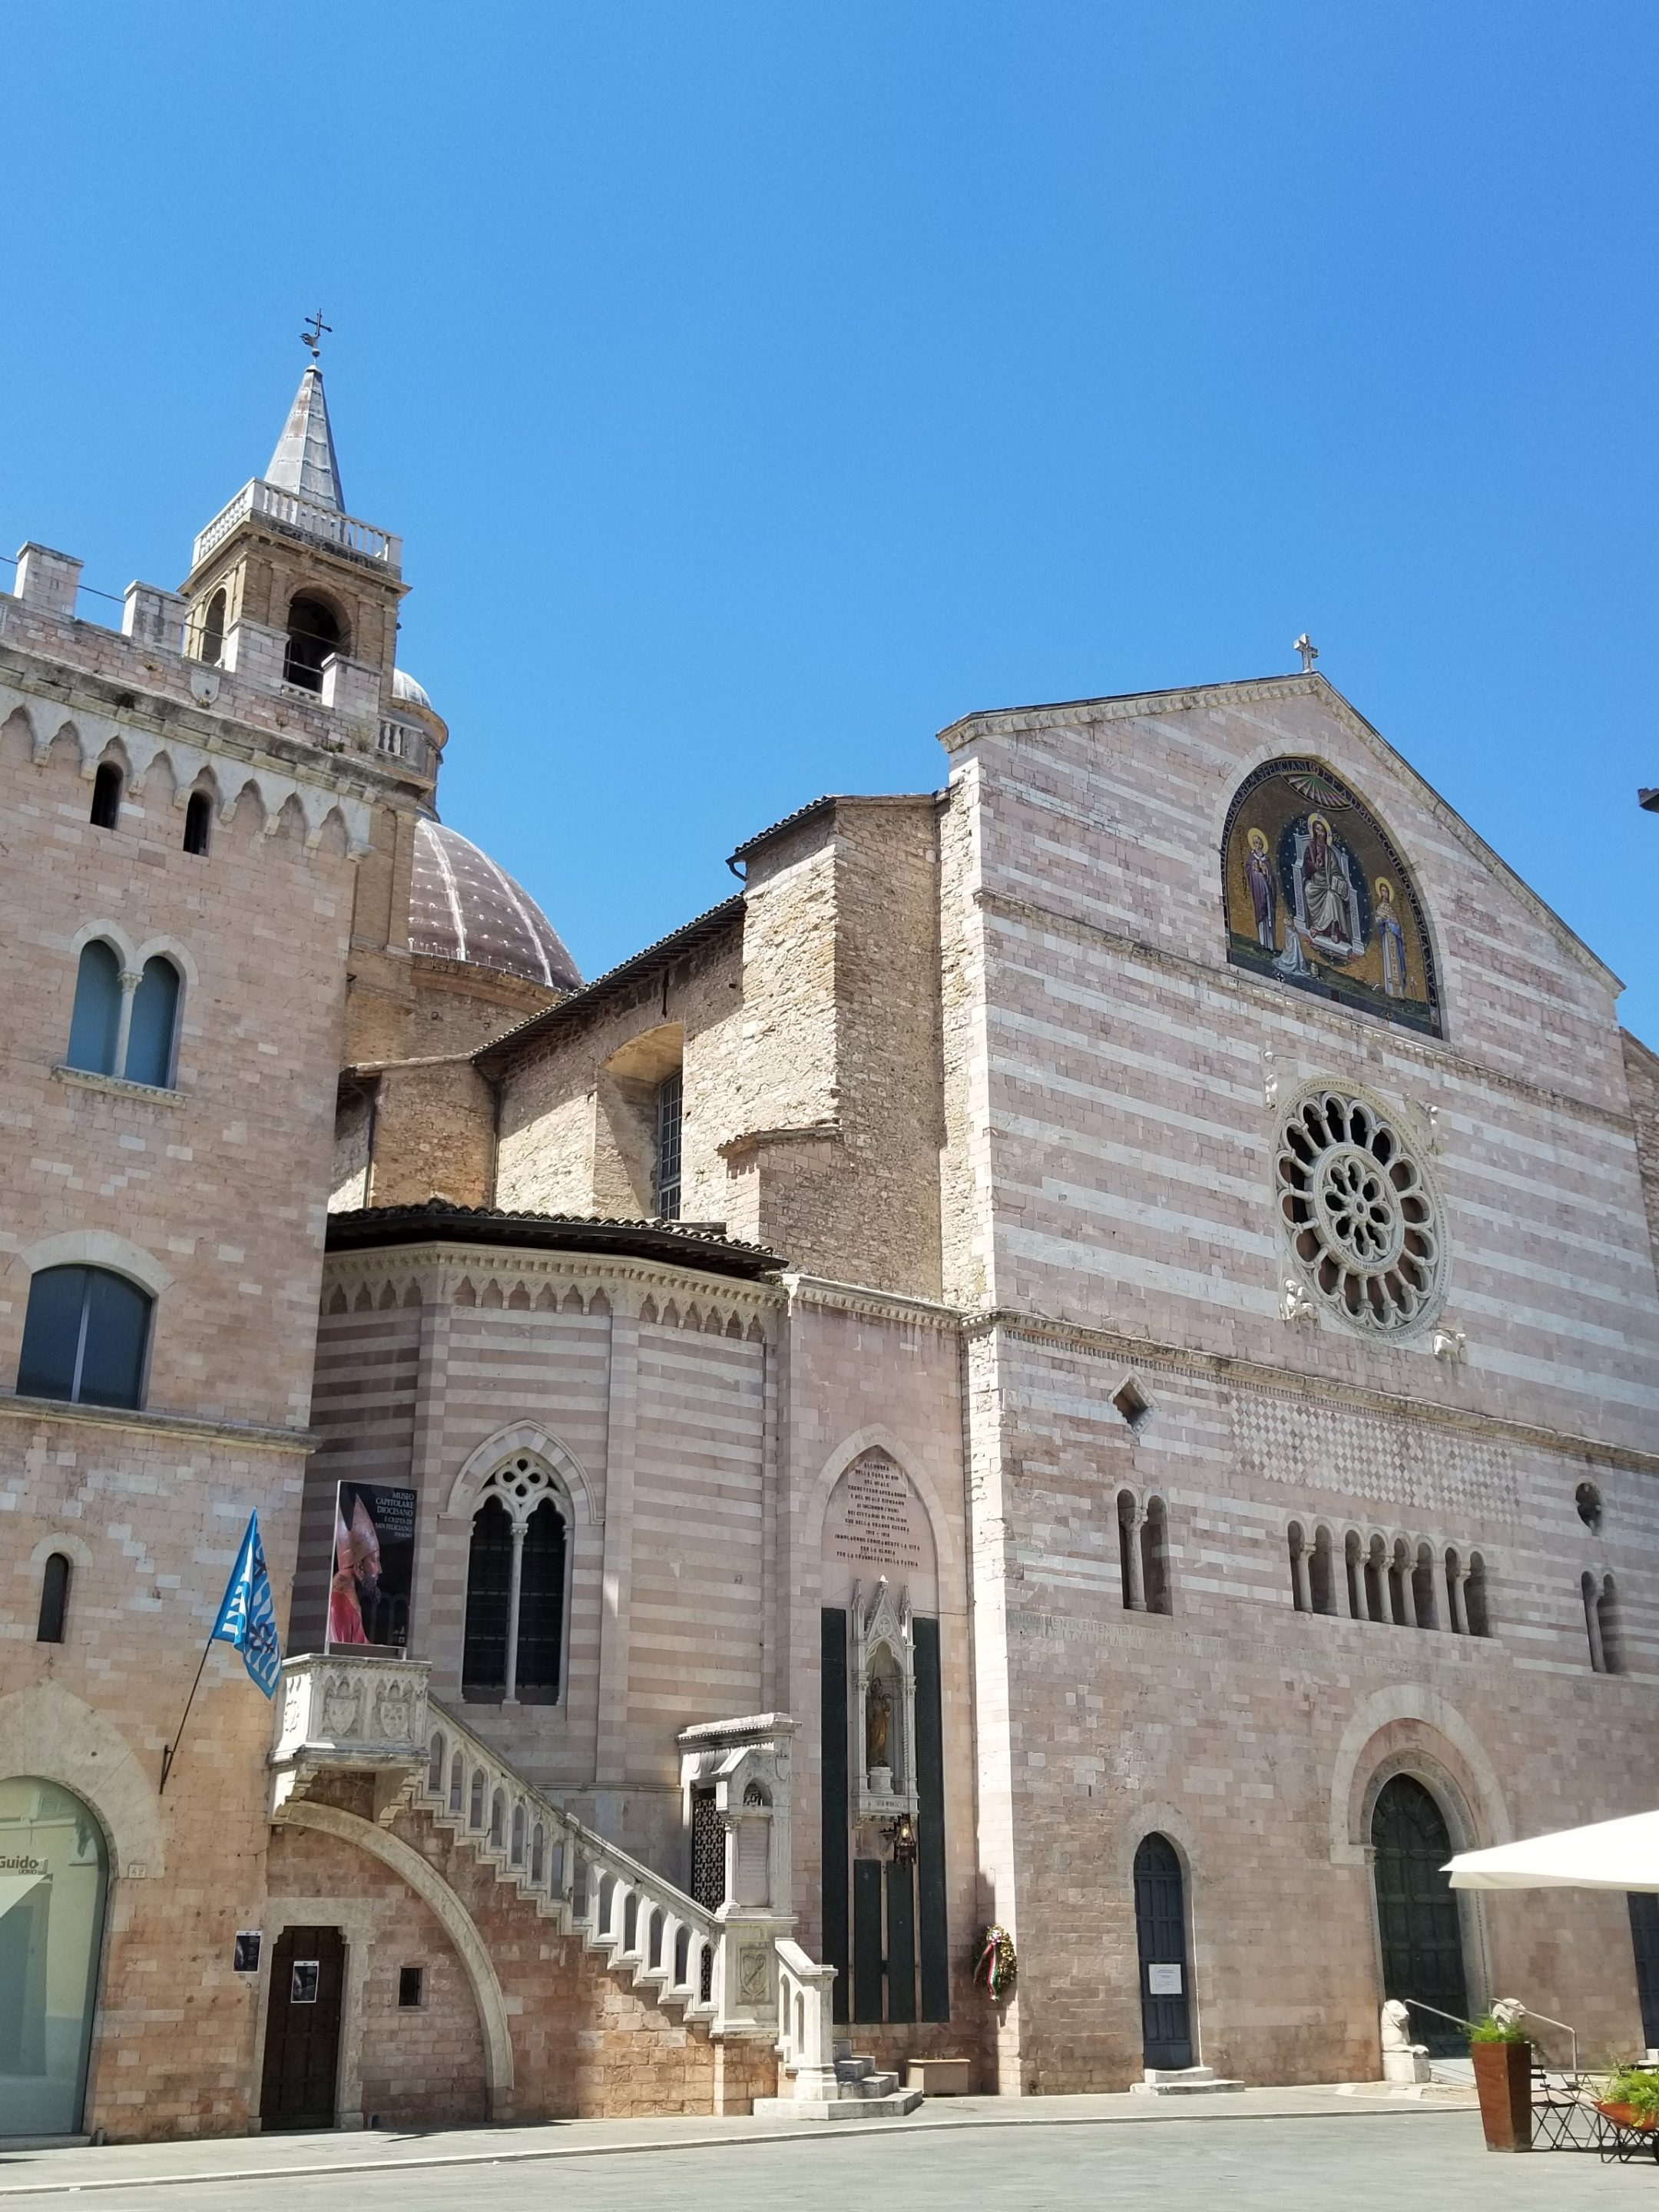 Foligno, Italy - A beautiful medieval town in Umbria. https://ouritalianjourney.com/foligno-italy-wonderful-month-in-umbria